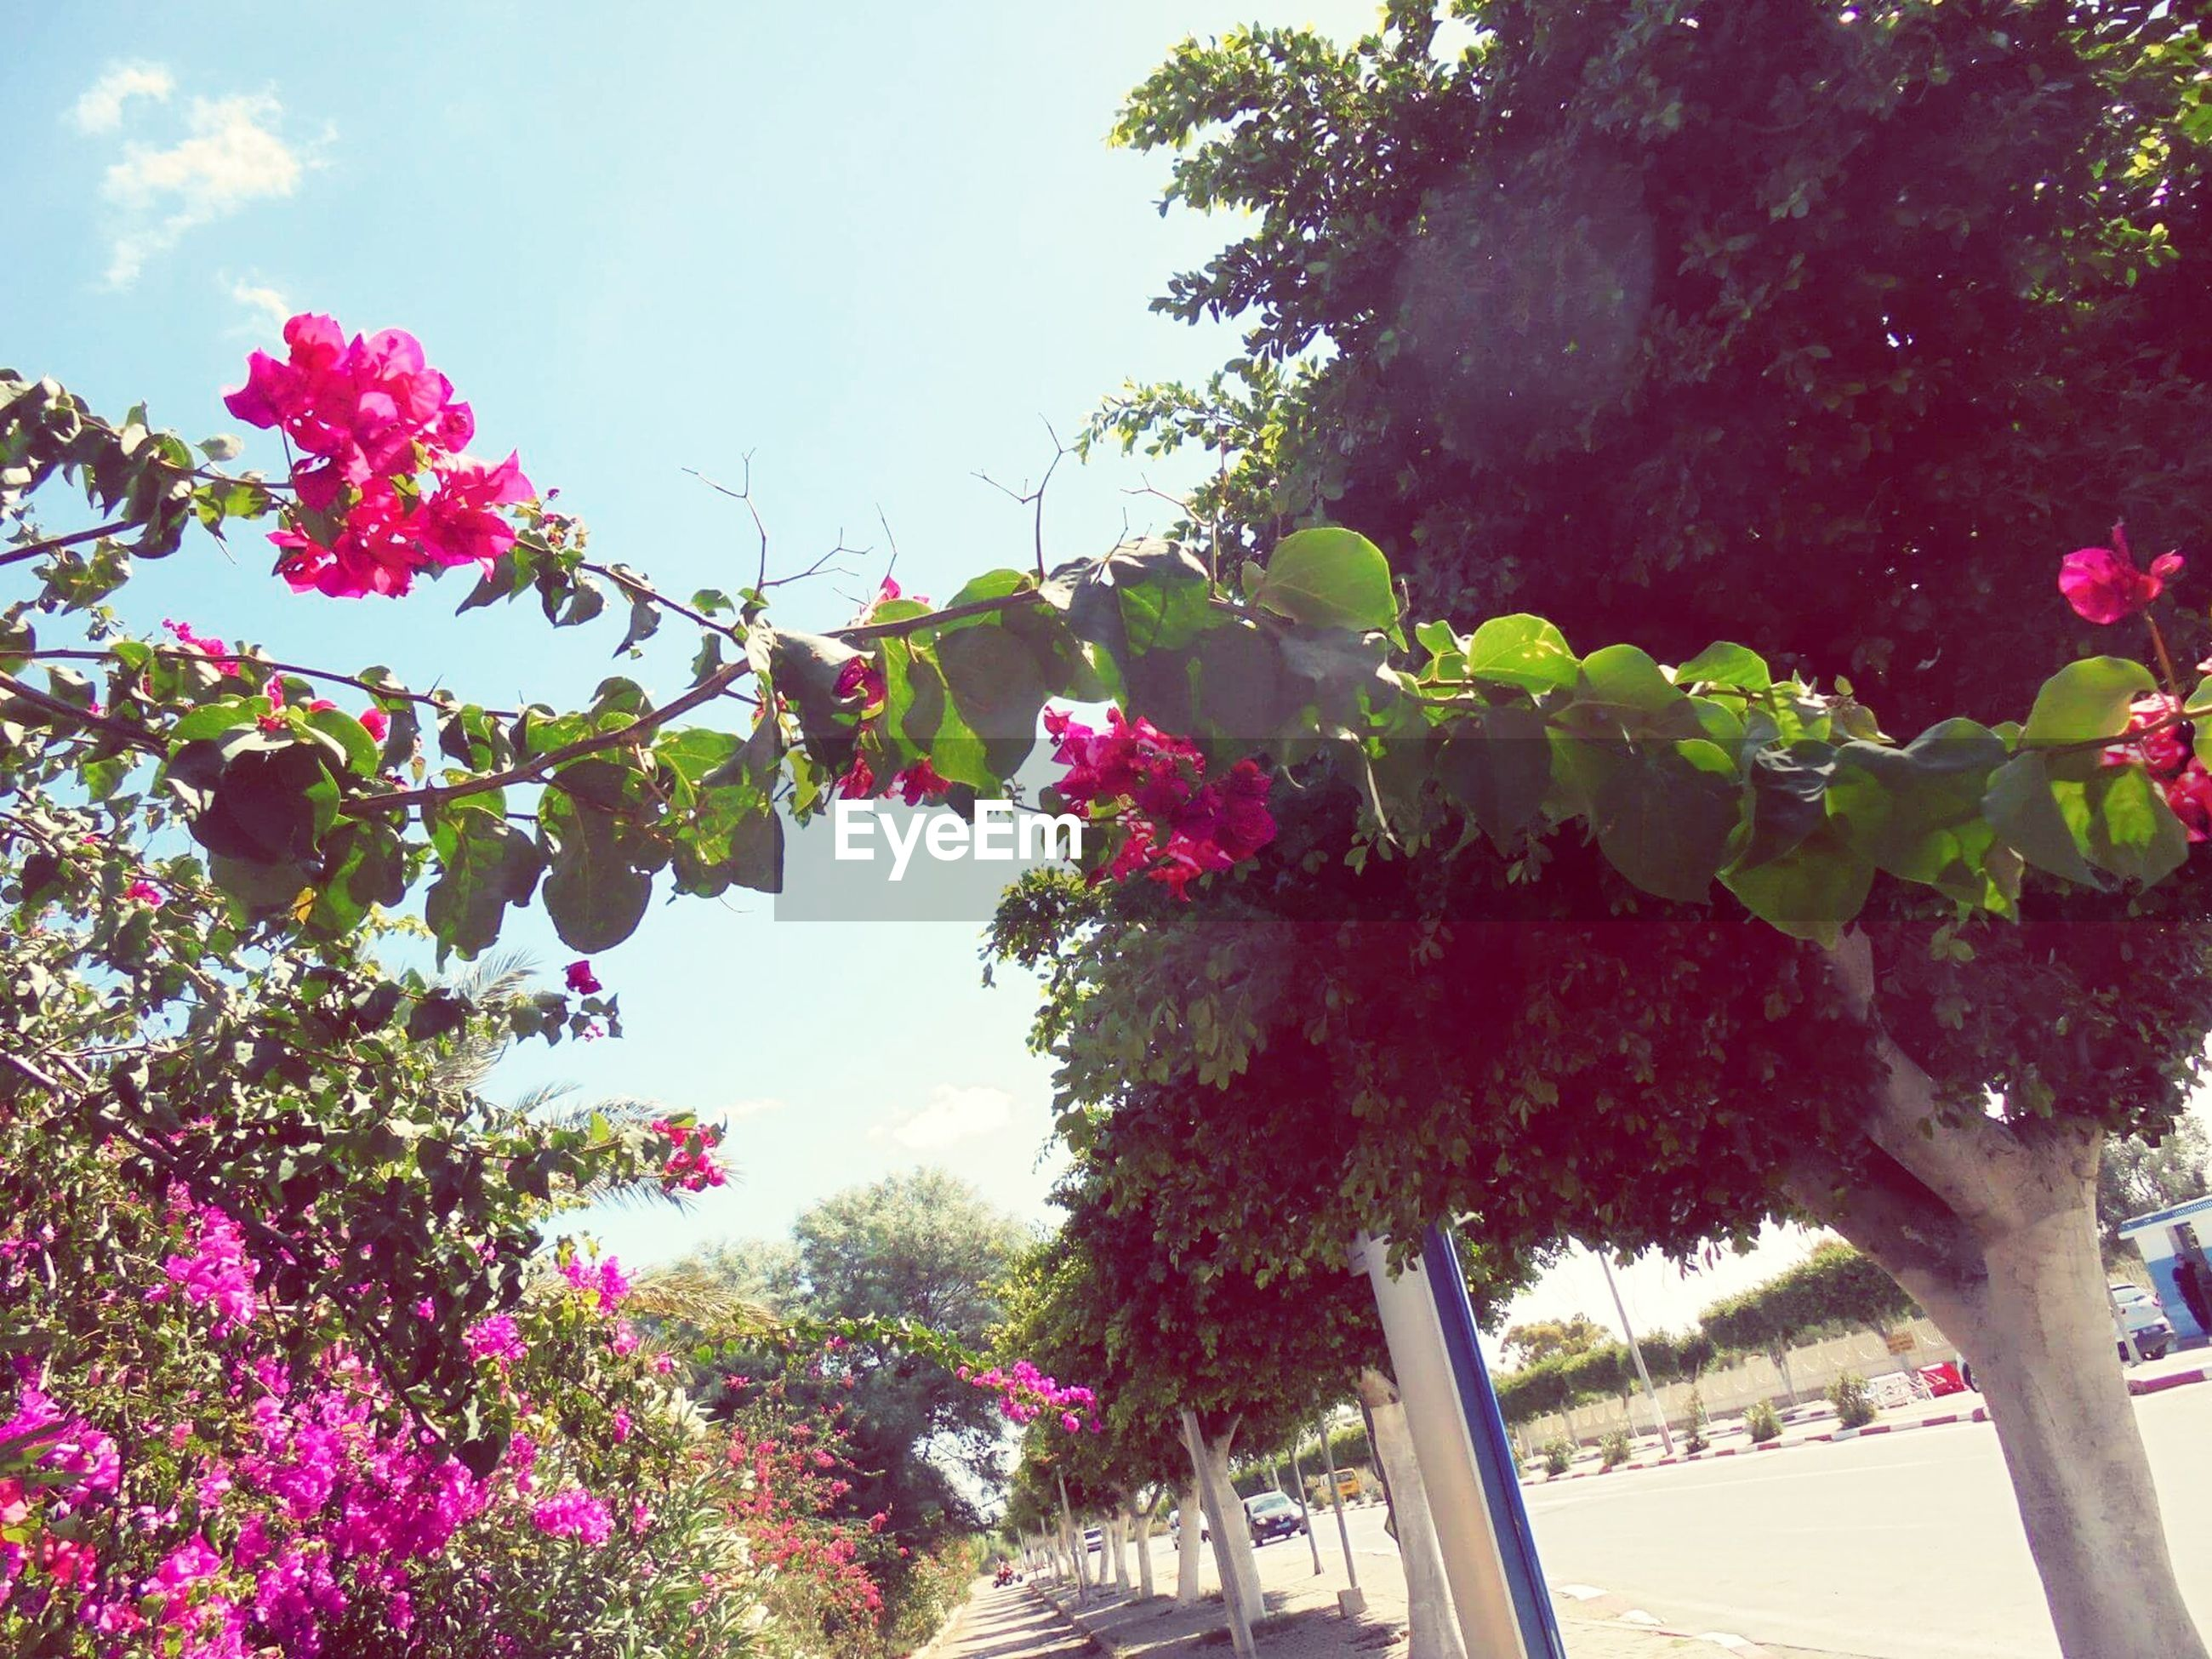 flower, growth, freshness, tree, pink color, beauty in nature, fragility, low angle view, plant, nature, clear sky, blooming, sky, leaf, branch, in bloom, blossom, sunlight, petal, day